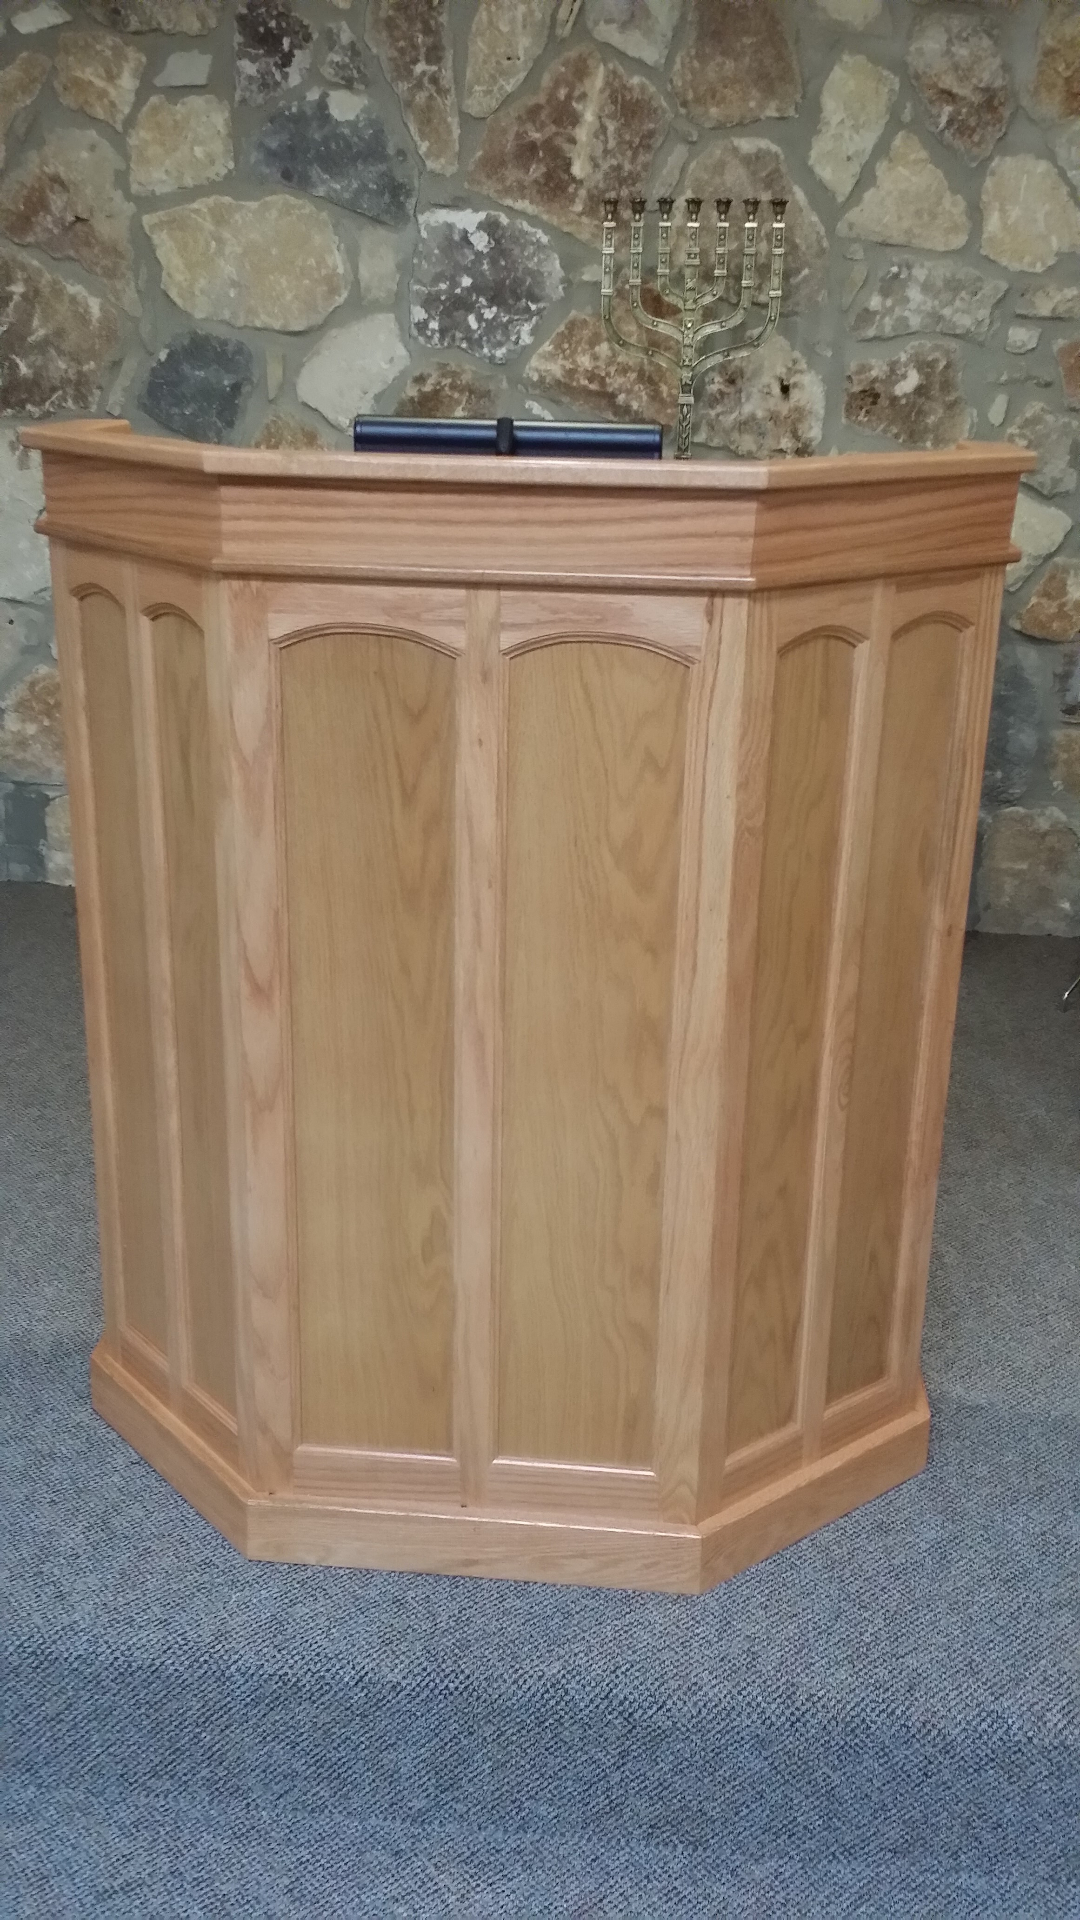 Podium feature 6 arched flat panels